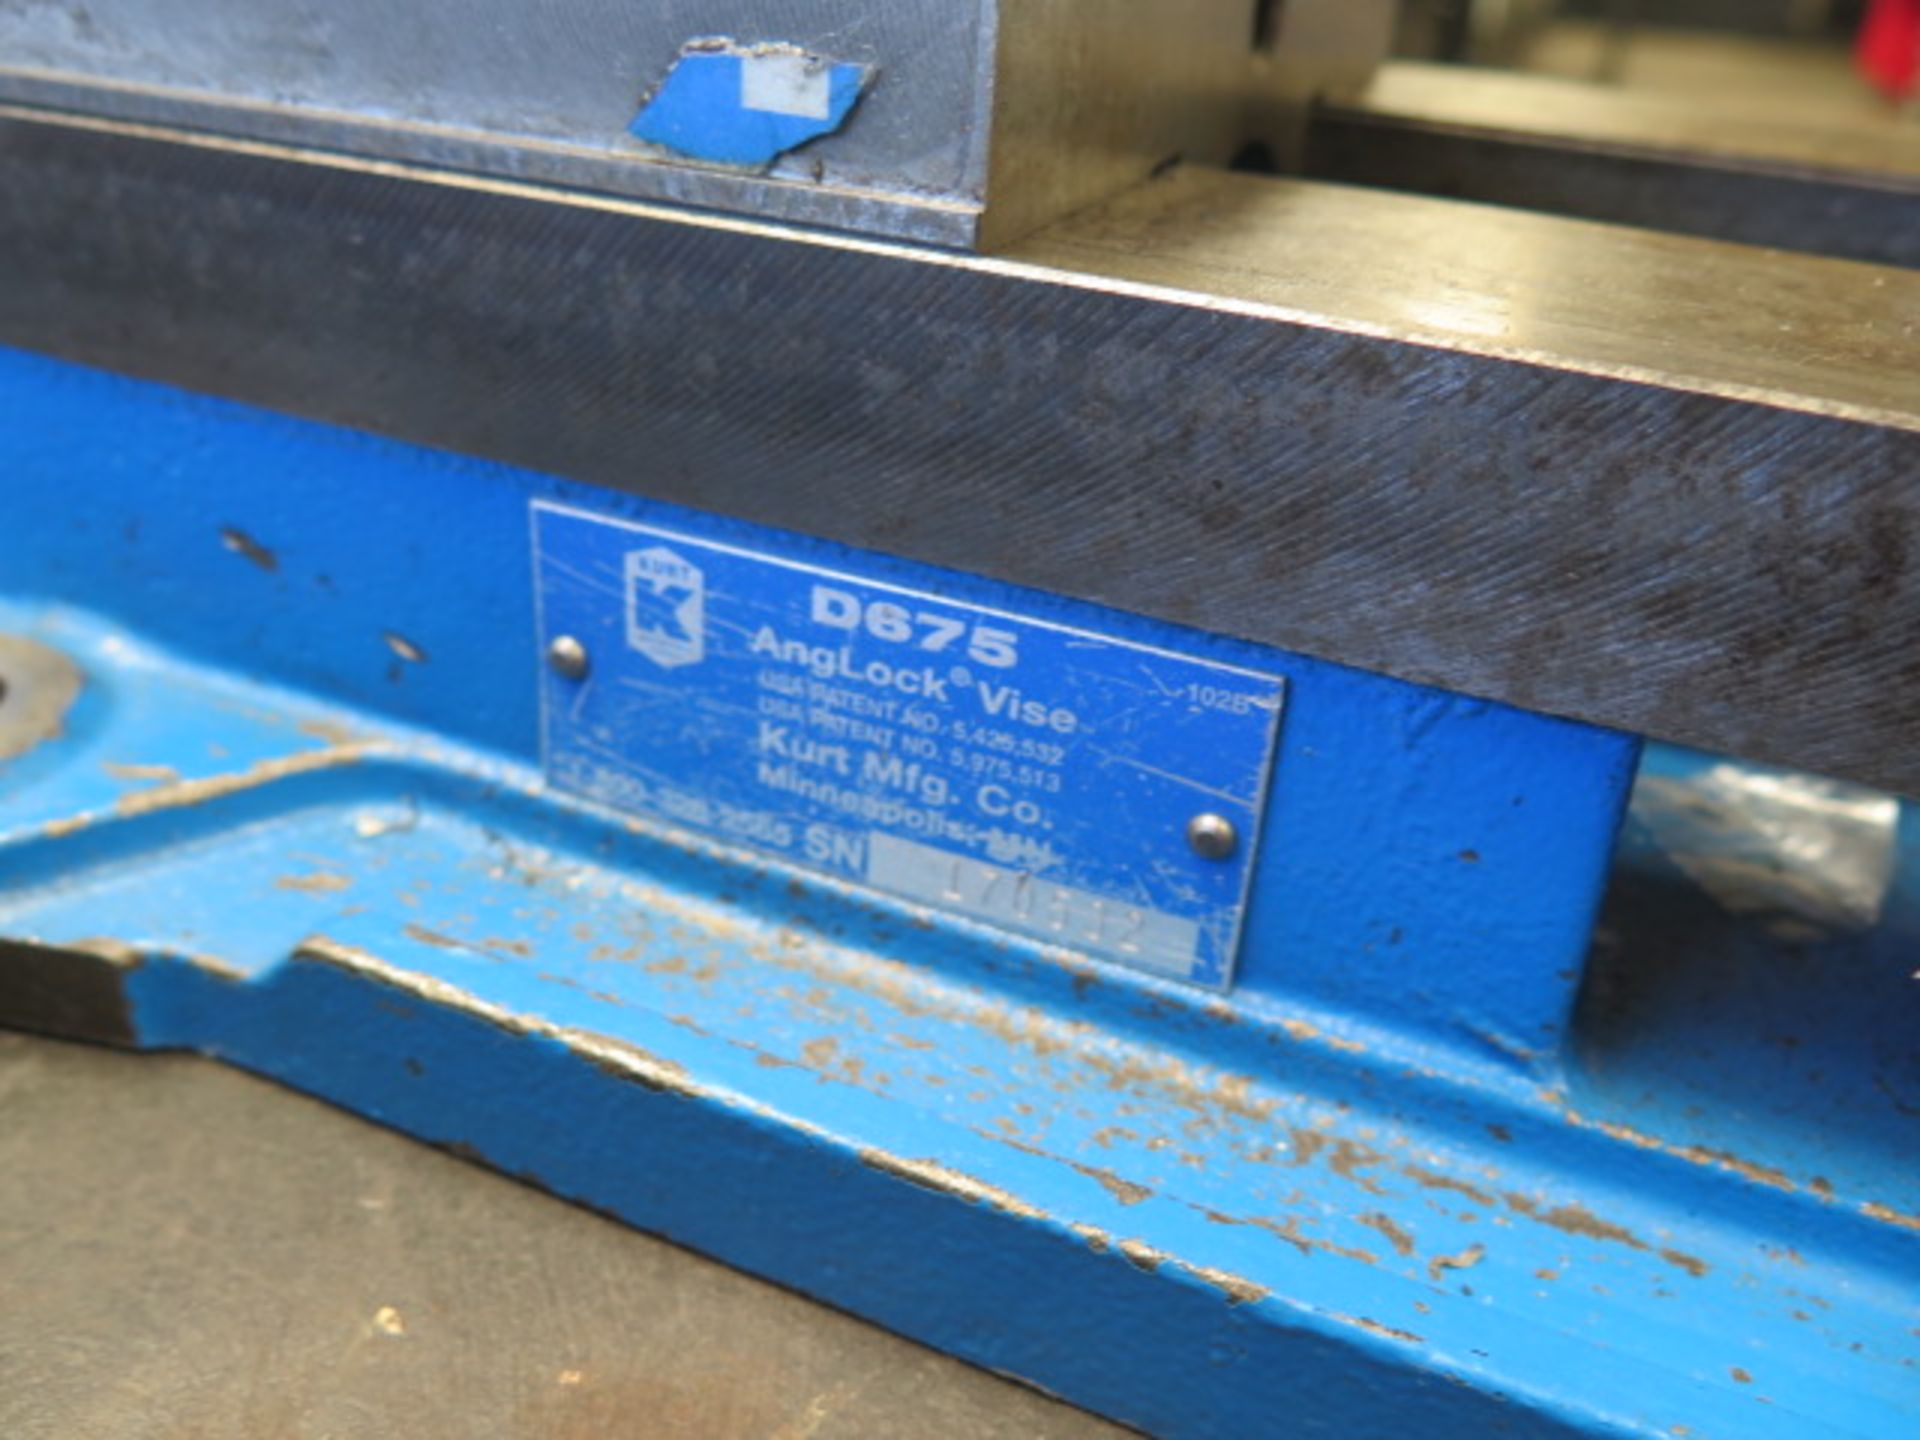 """Kurt D675 6"""" Angle-Lock Vise (SOLD AS-IS - NO WARRANTY) - Image 3 of 3"""